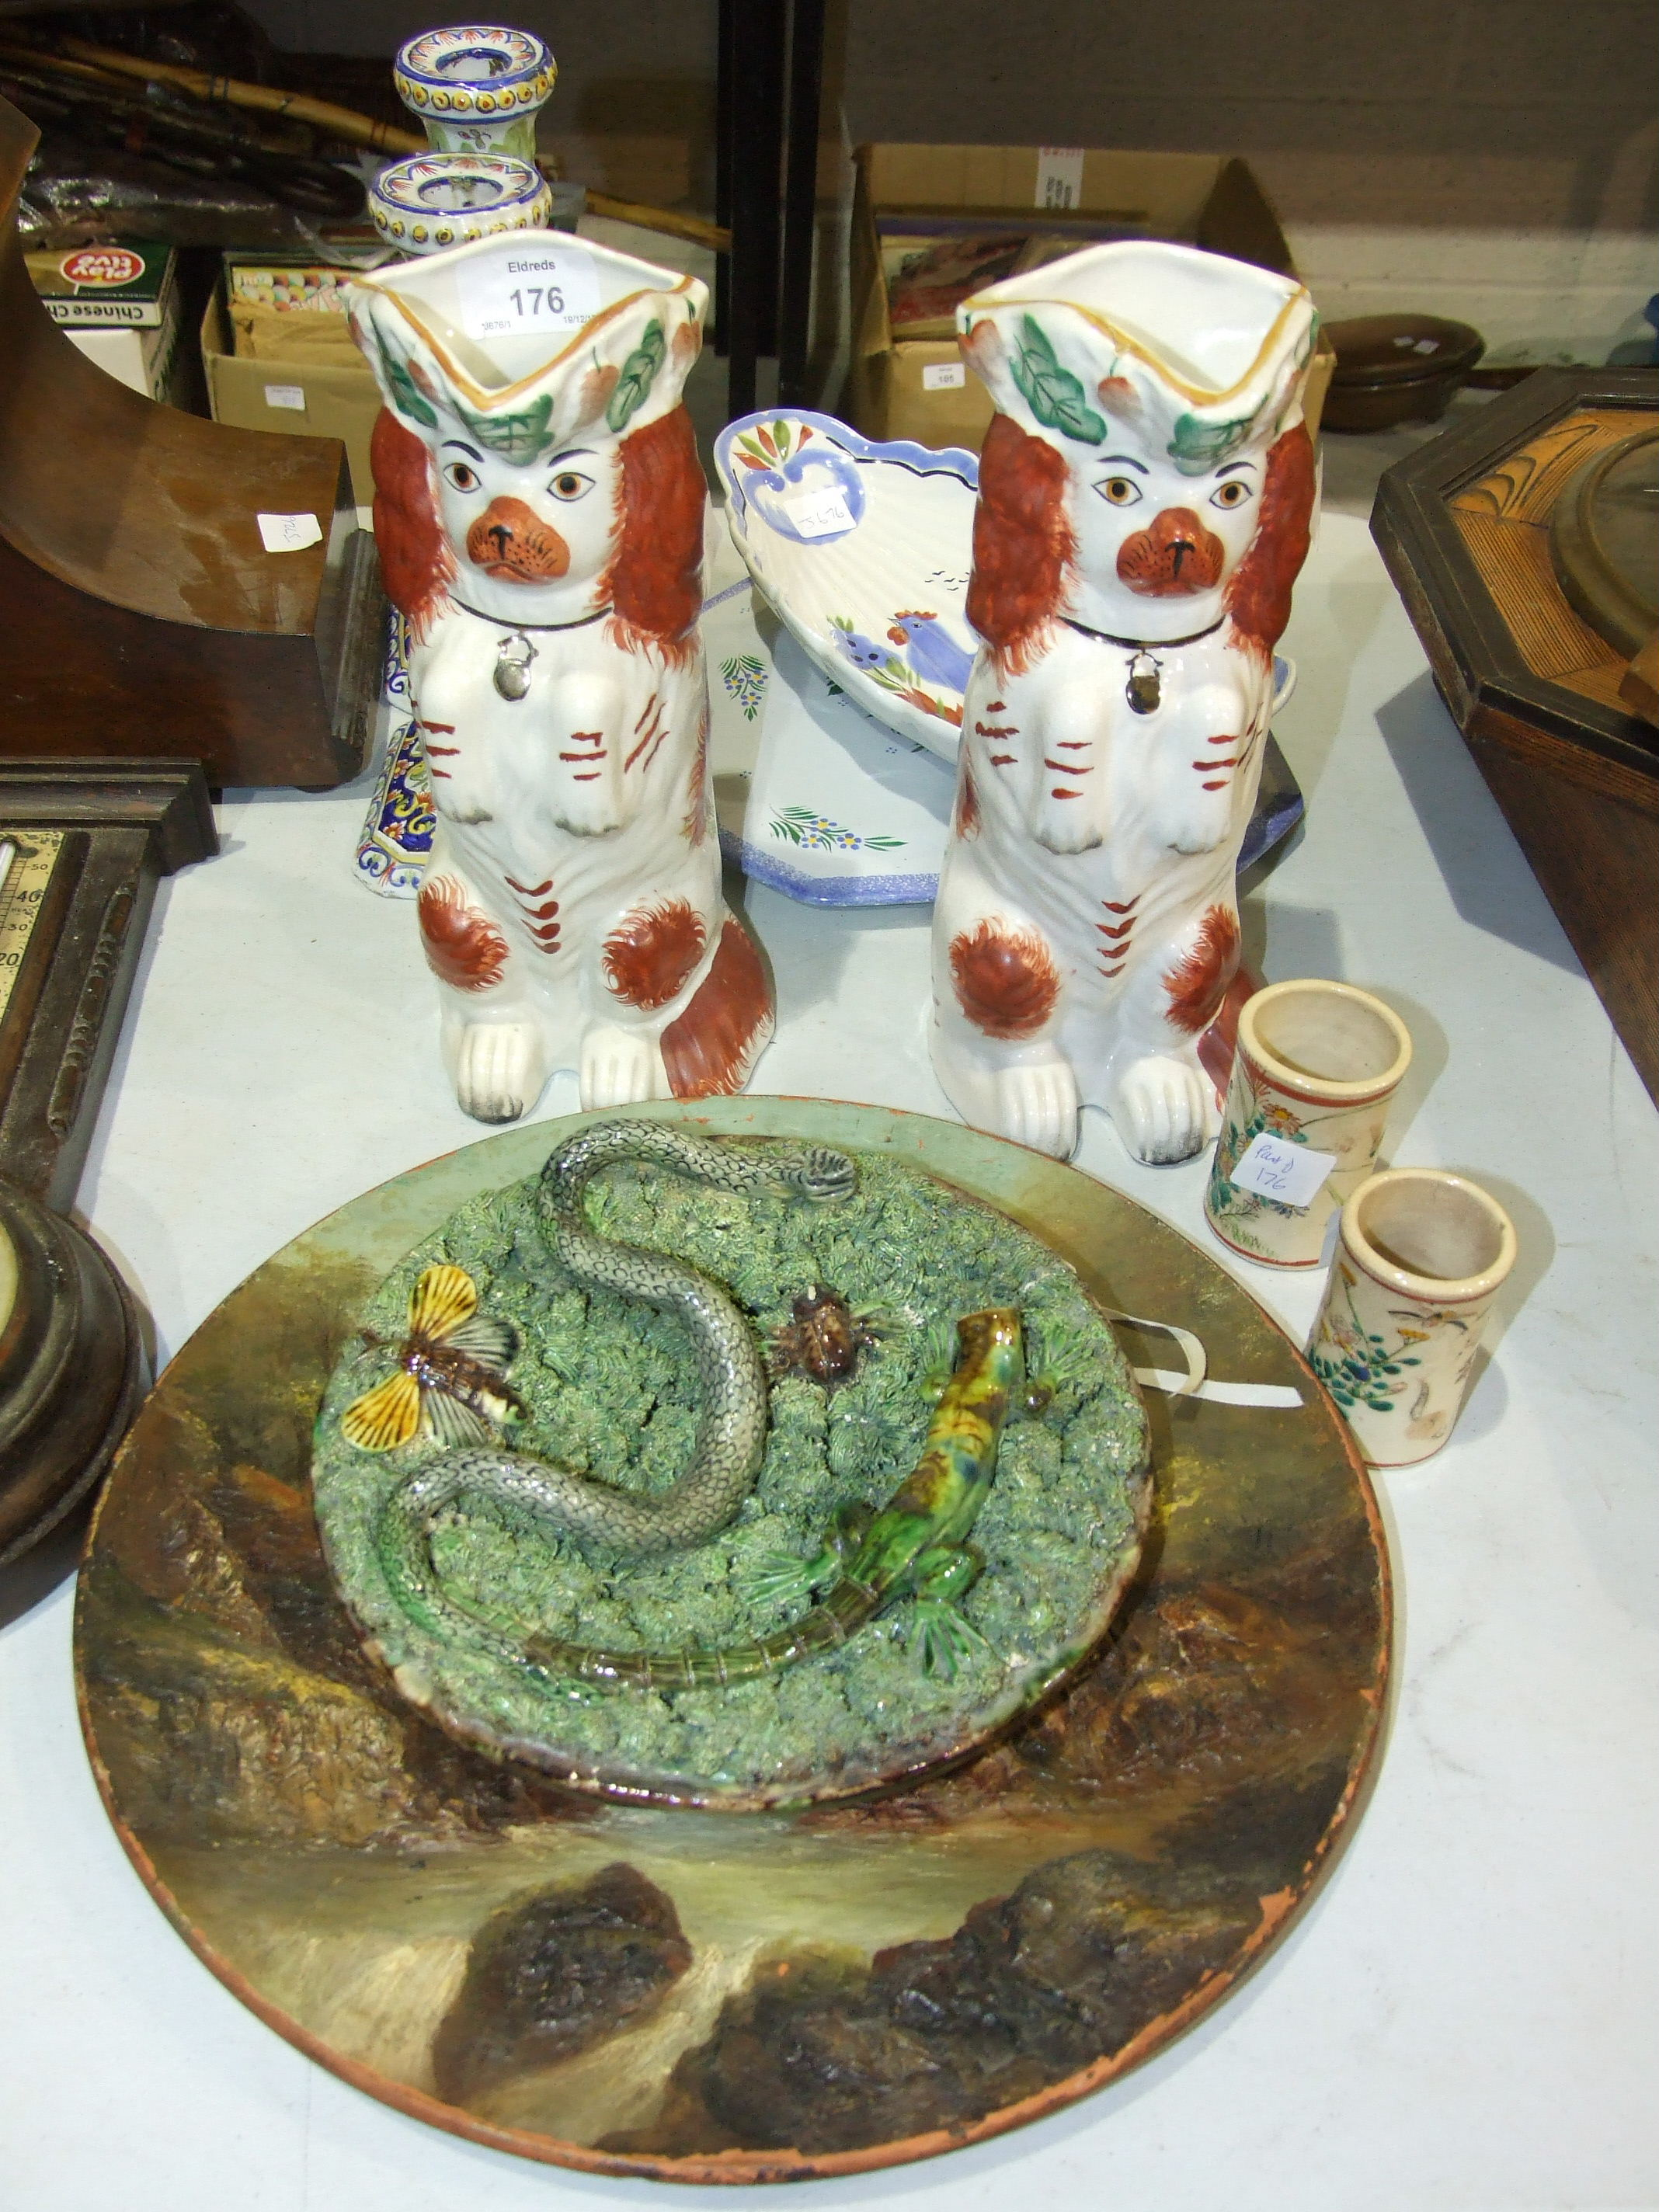 Lot 176 - A pair of Staffordshire jugs in the form of begging Spaniels, 26cm high, a Watcombe circular